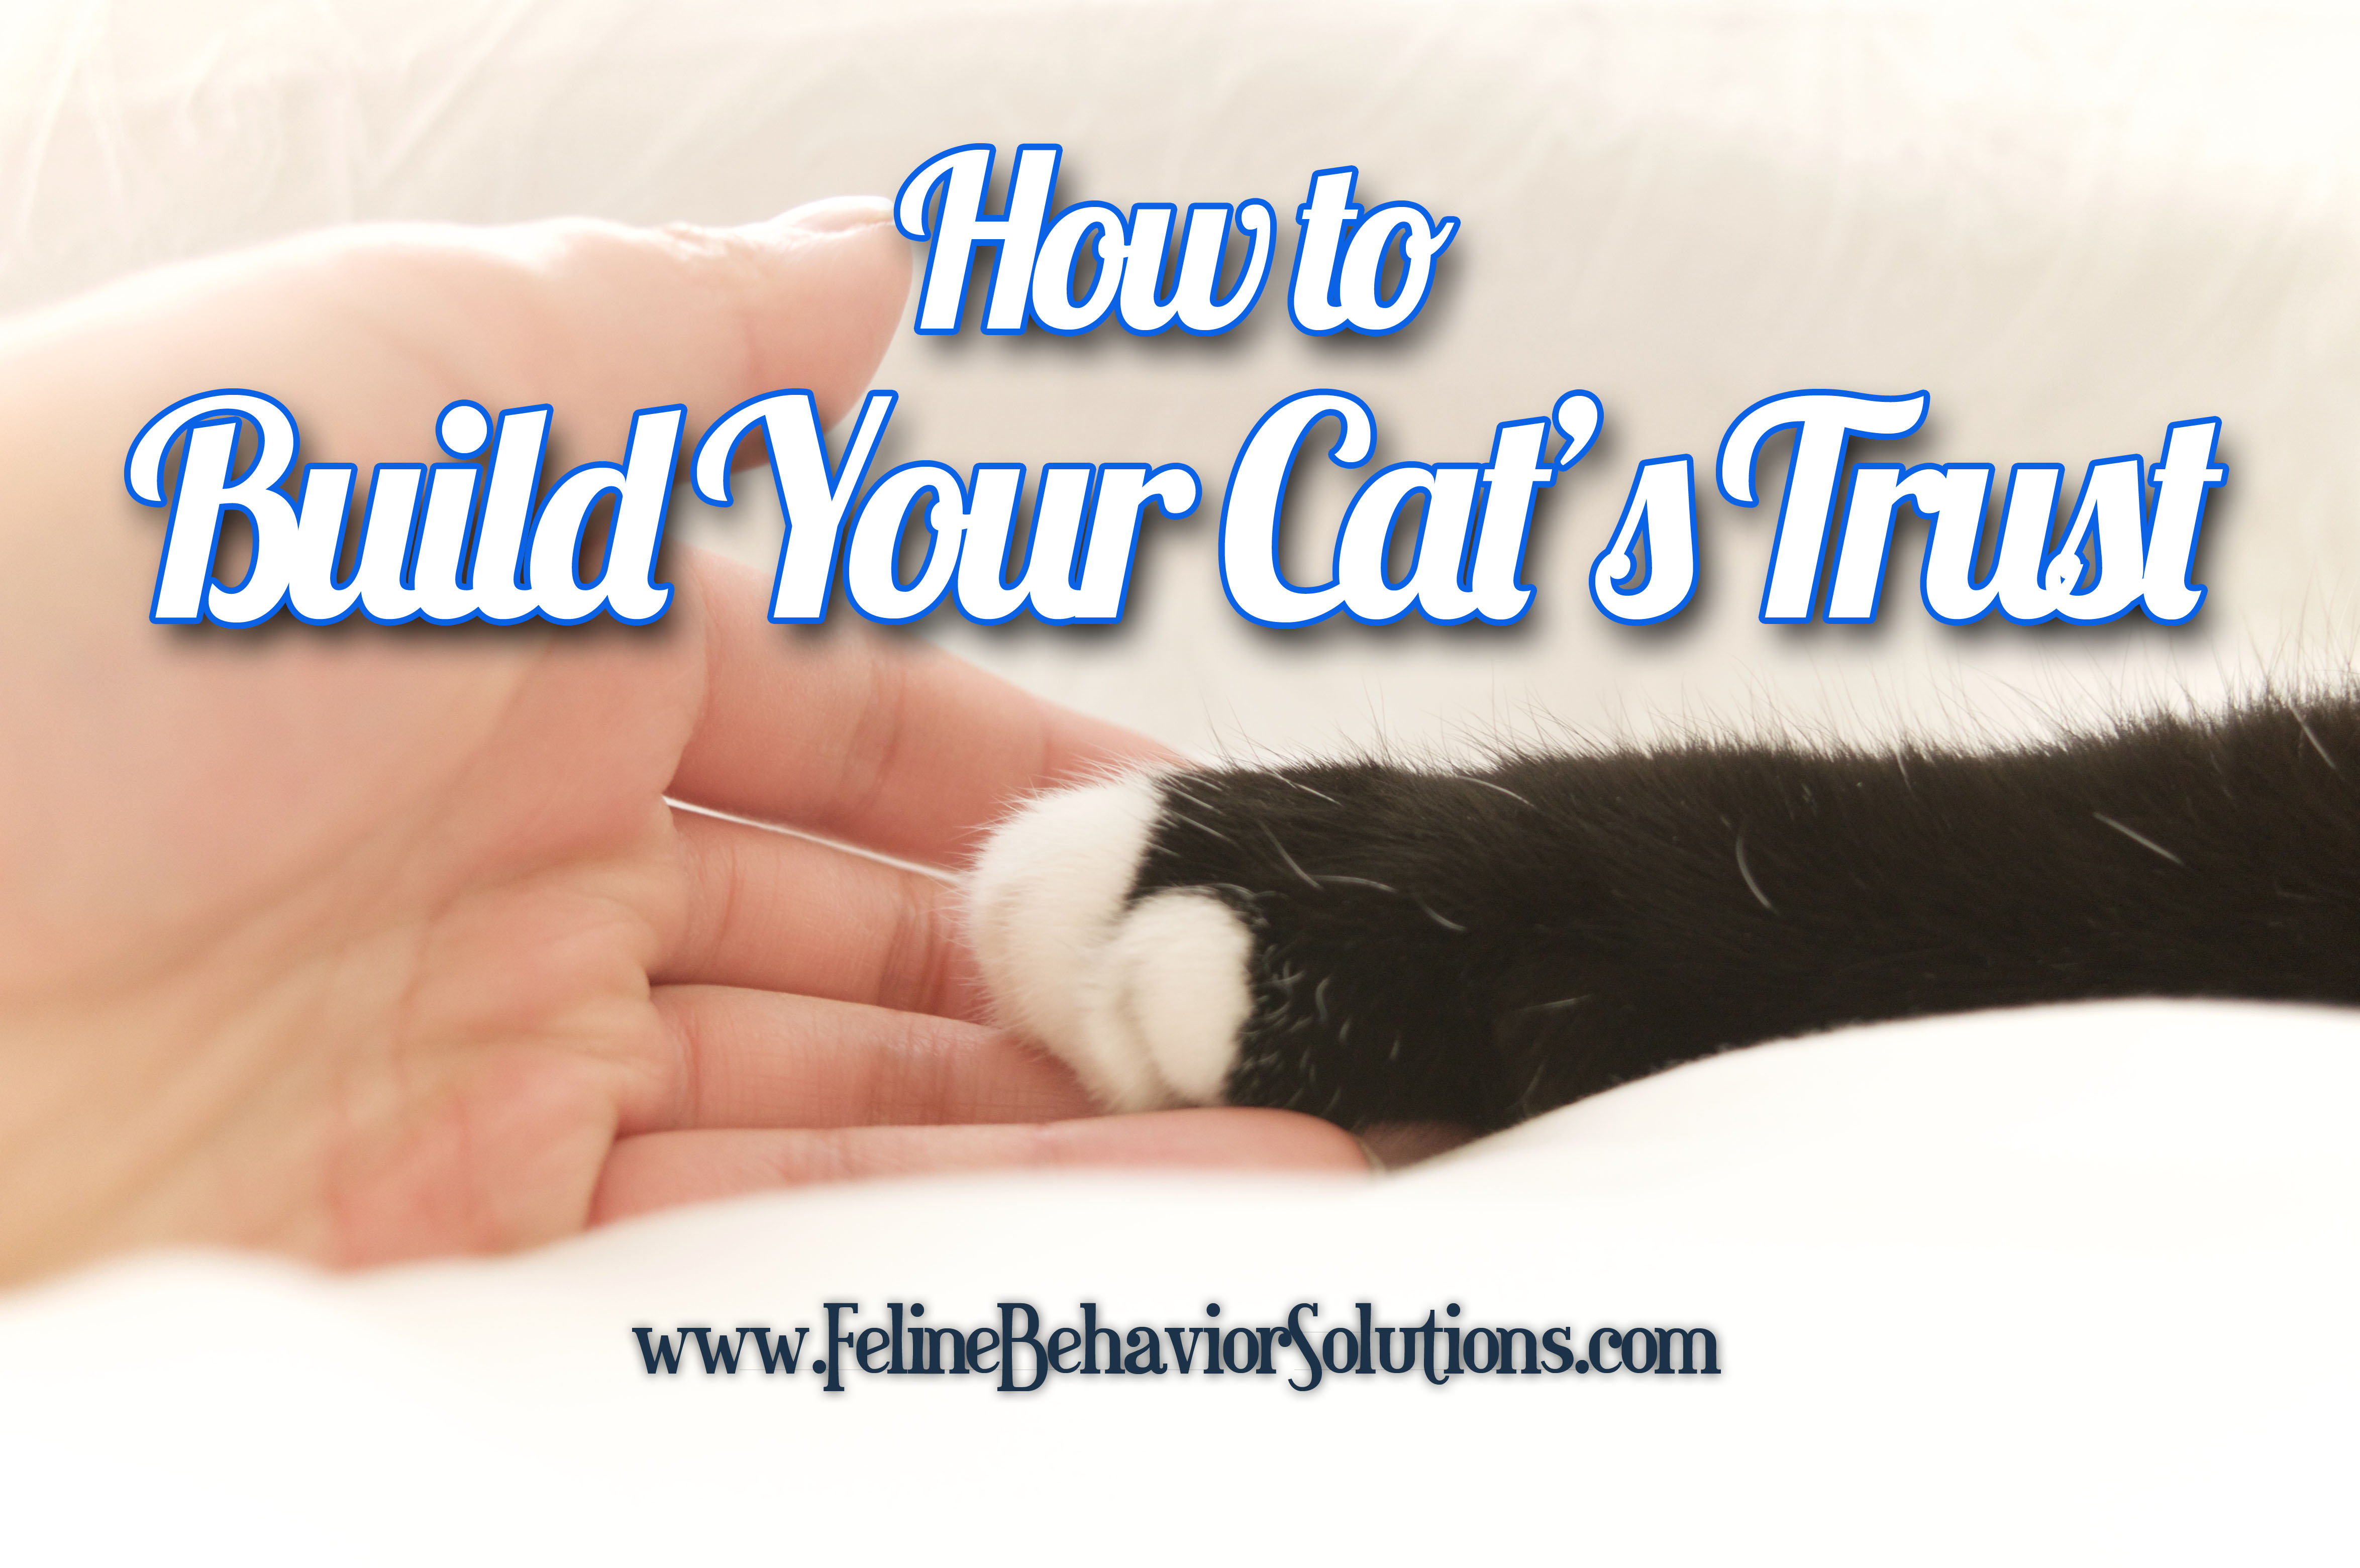 Build Your Cat's Trust